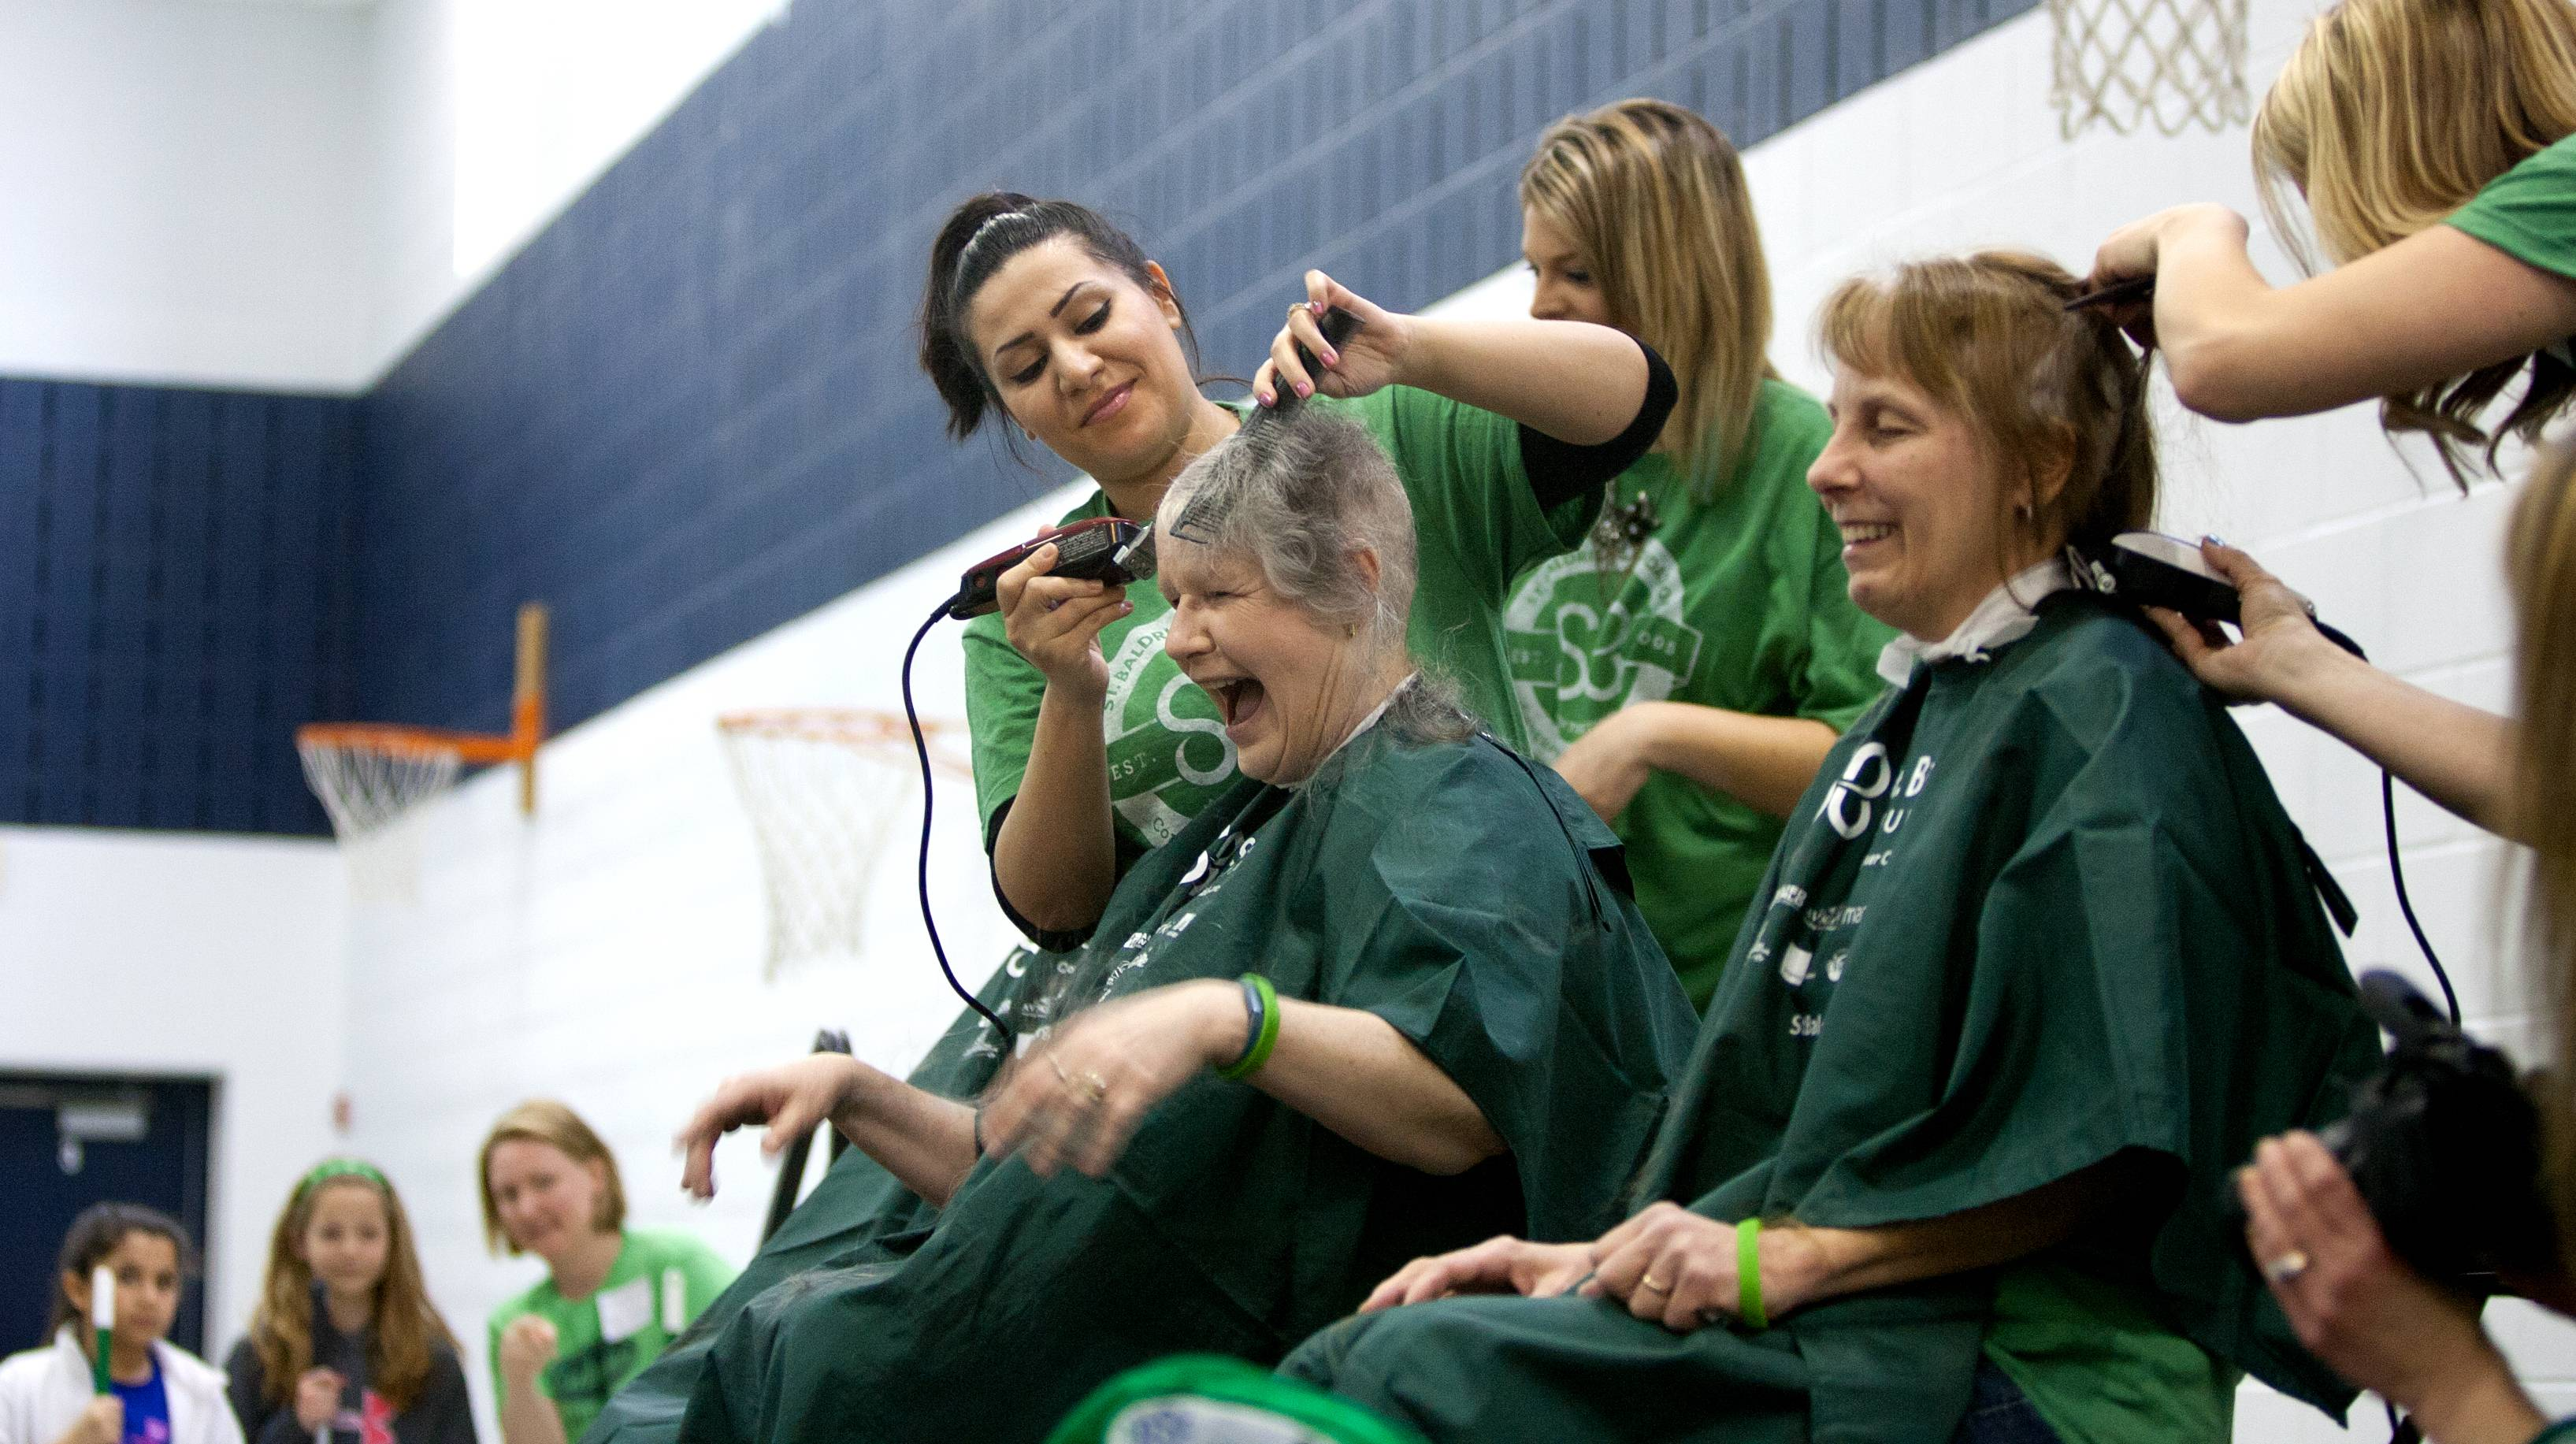 Educators Judy Bilitzki, left, and Pam Menzel, right, receive their haircuts, as students and staff at Madison School in Wheaton participate in a fundraiser for the St. Baldrick's foundation.